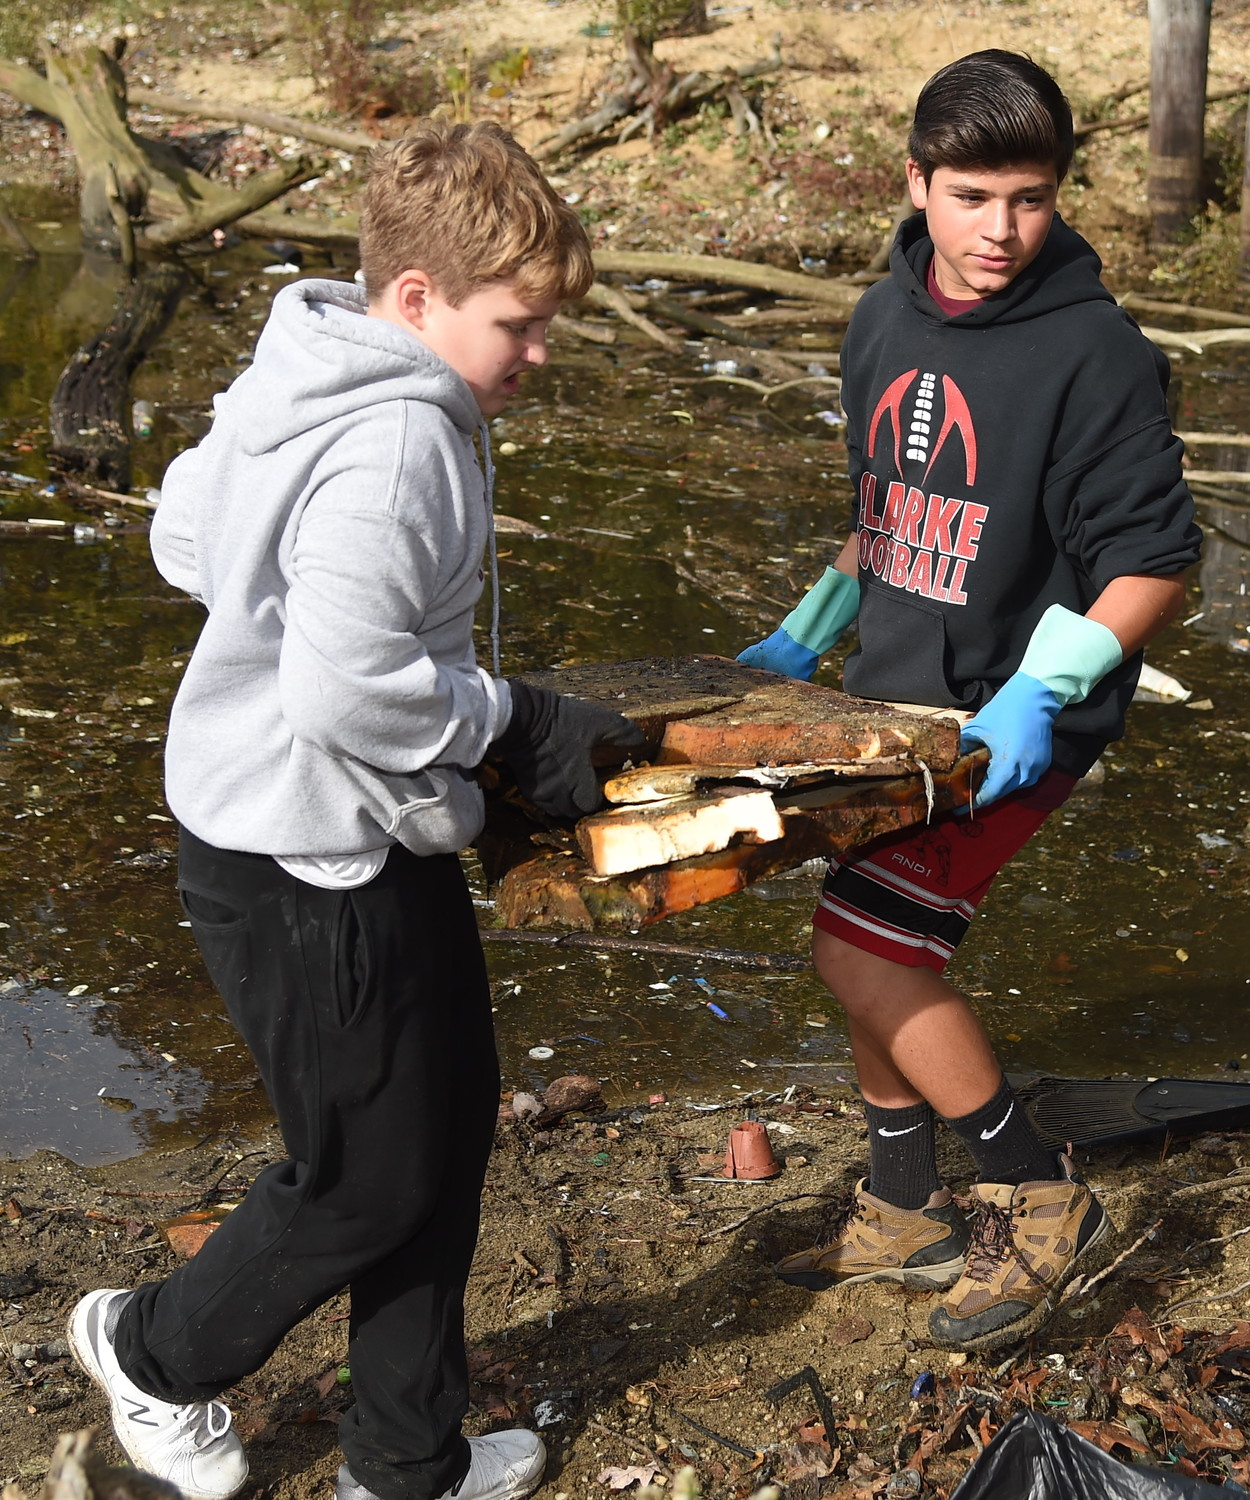 Robert Richard, 13, above, and Matt Anest, 14, carried large plastic disks that were decaying into the soil.